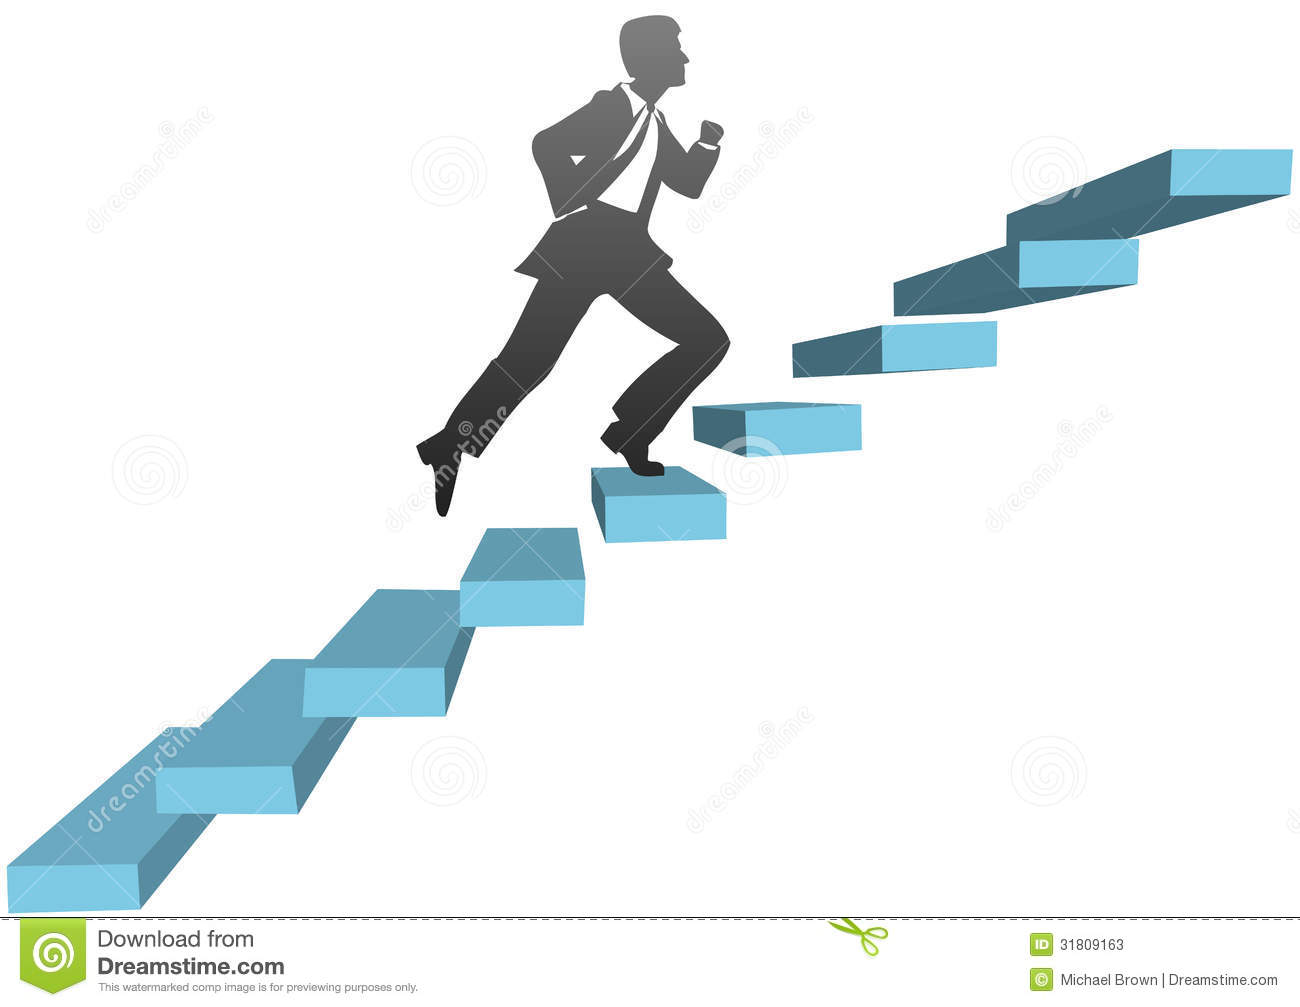 business-man-running-climb-stairs-stylized-businessman-runs-up-challenge-to-find-success-31809163.jpg